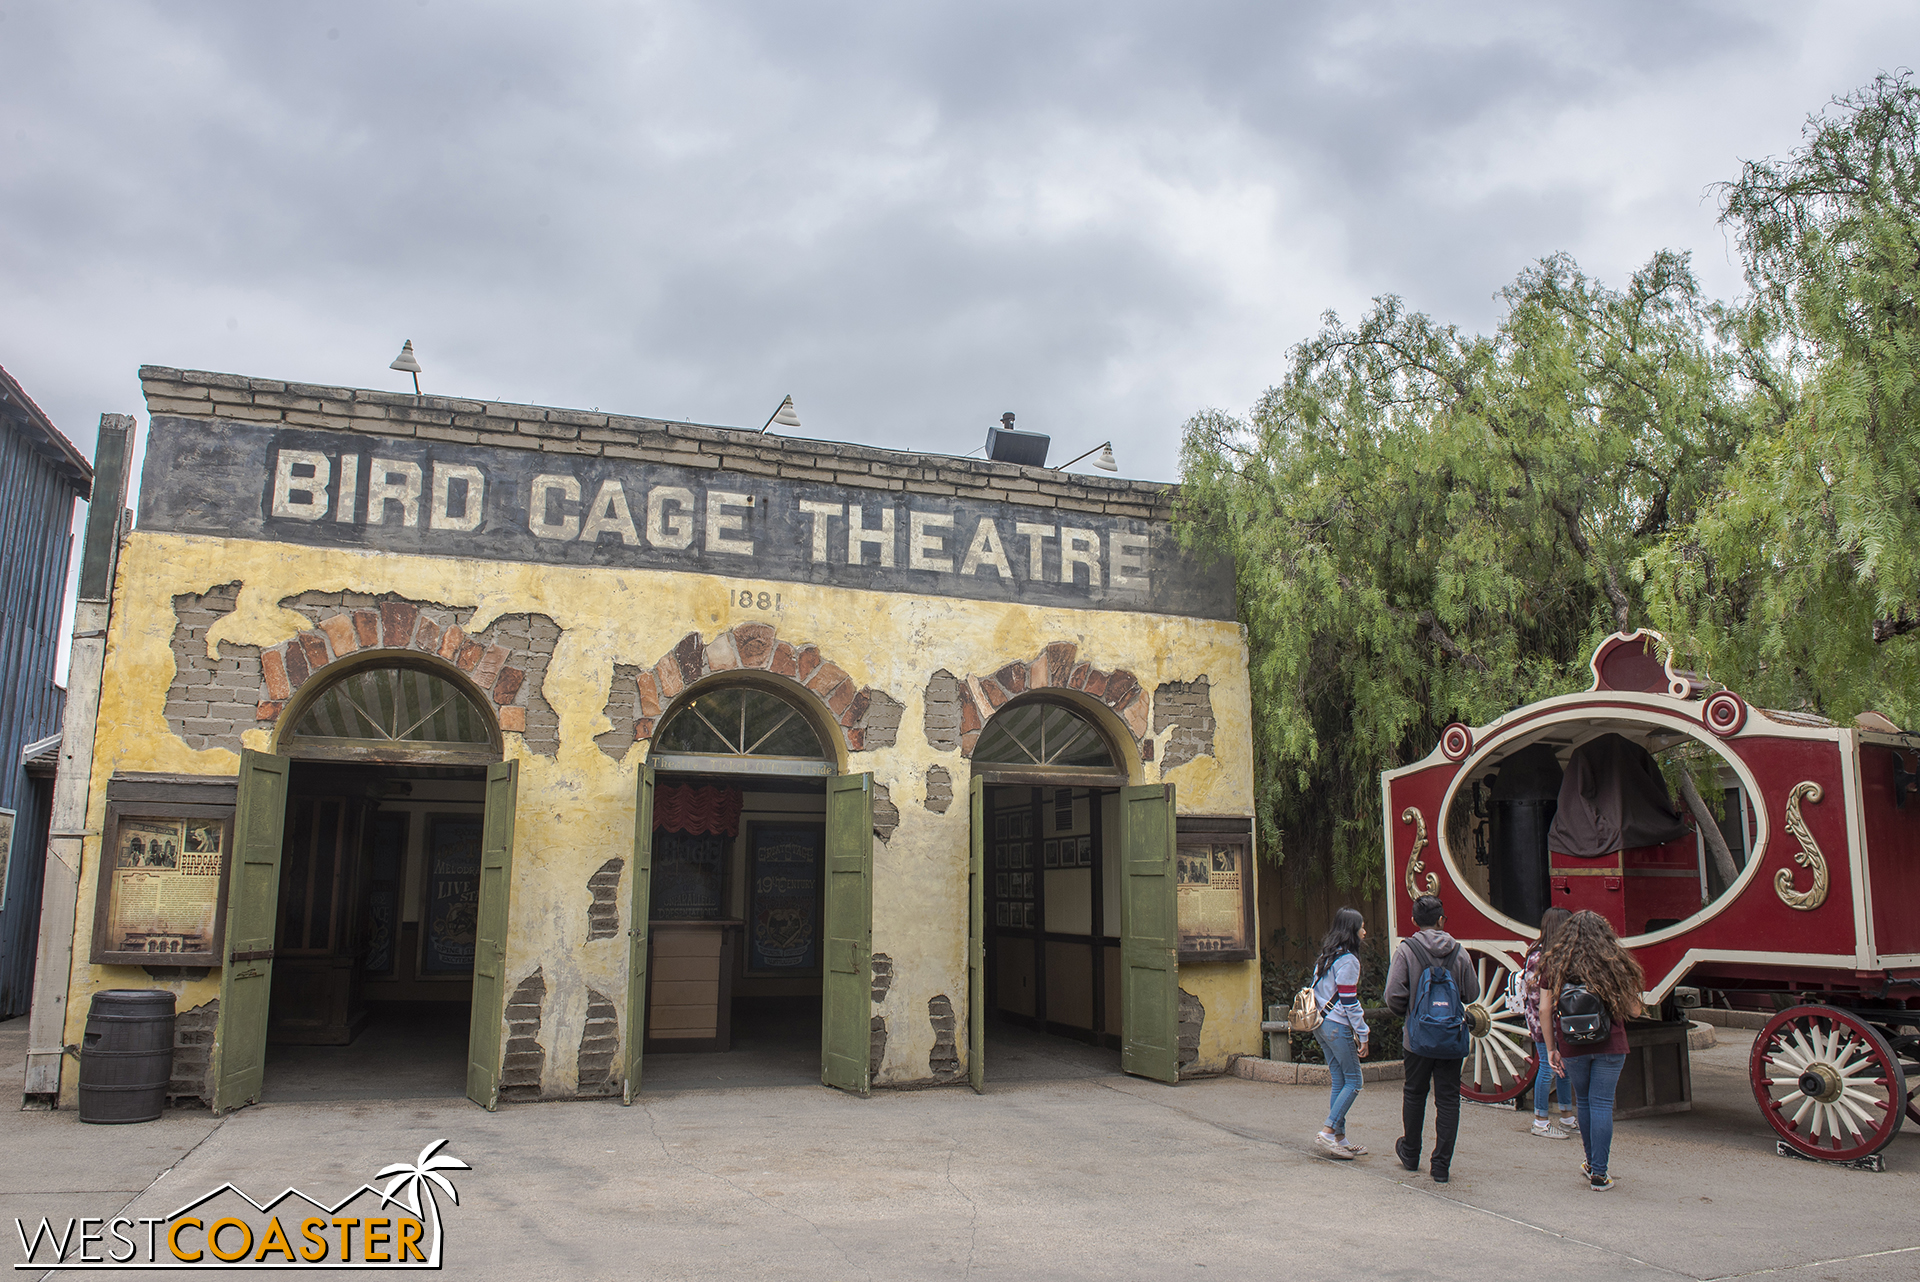 The Bird Cage Theater is home to a park show and is not directly involved with Ghost Town Alive!, but it factors into the lore.